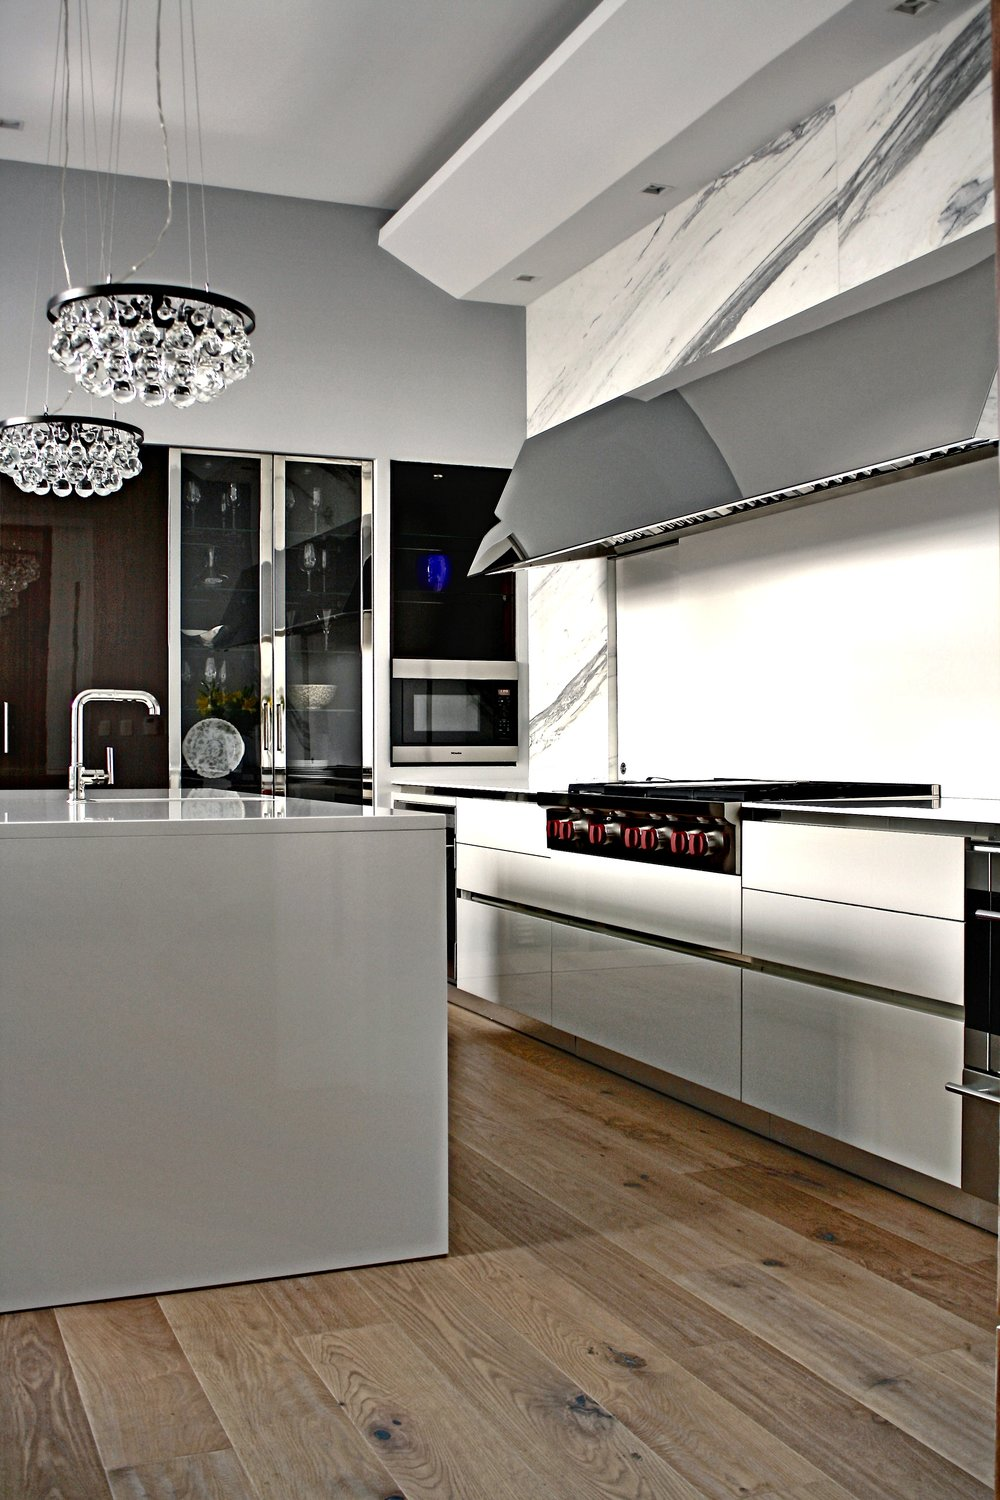 william-adams-design-chapultepec-mexico-city-kitchen-wolf-range-and-exhaust-1.jpg